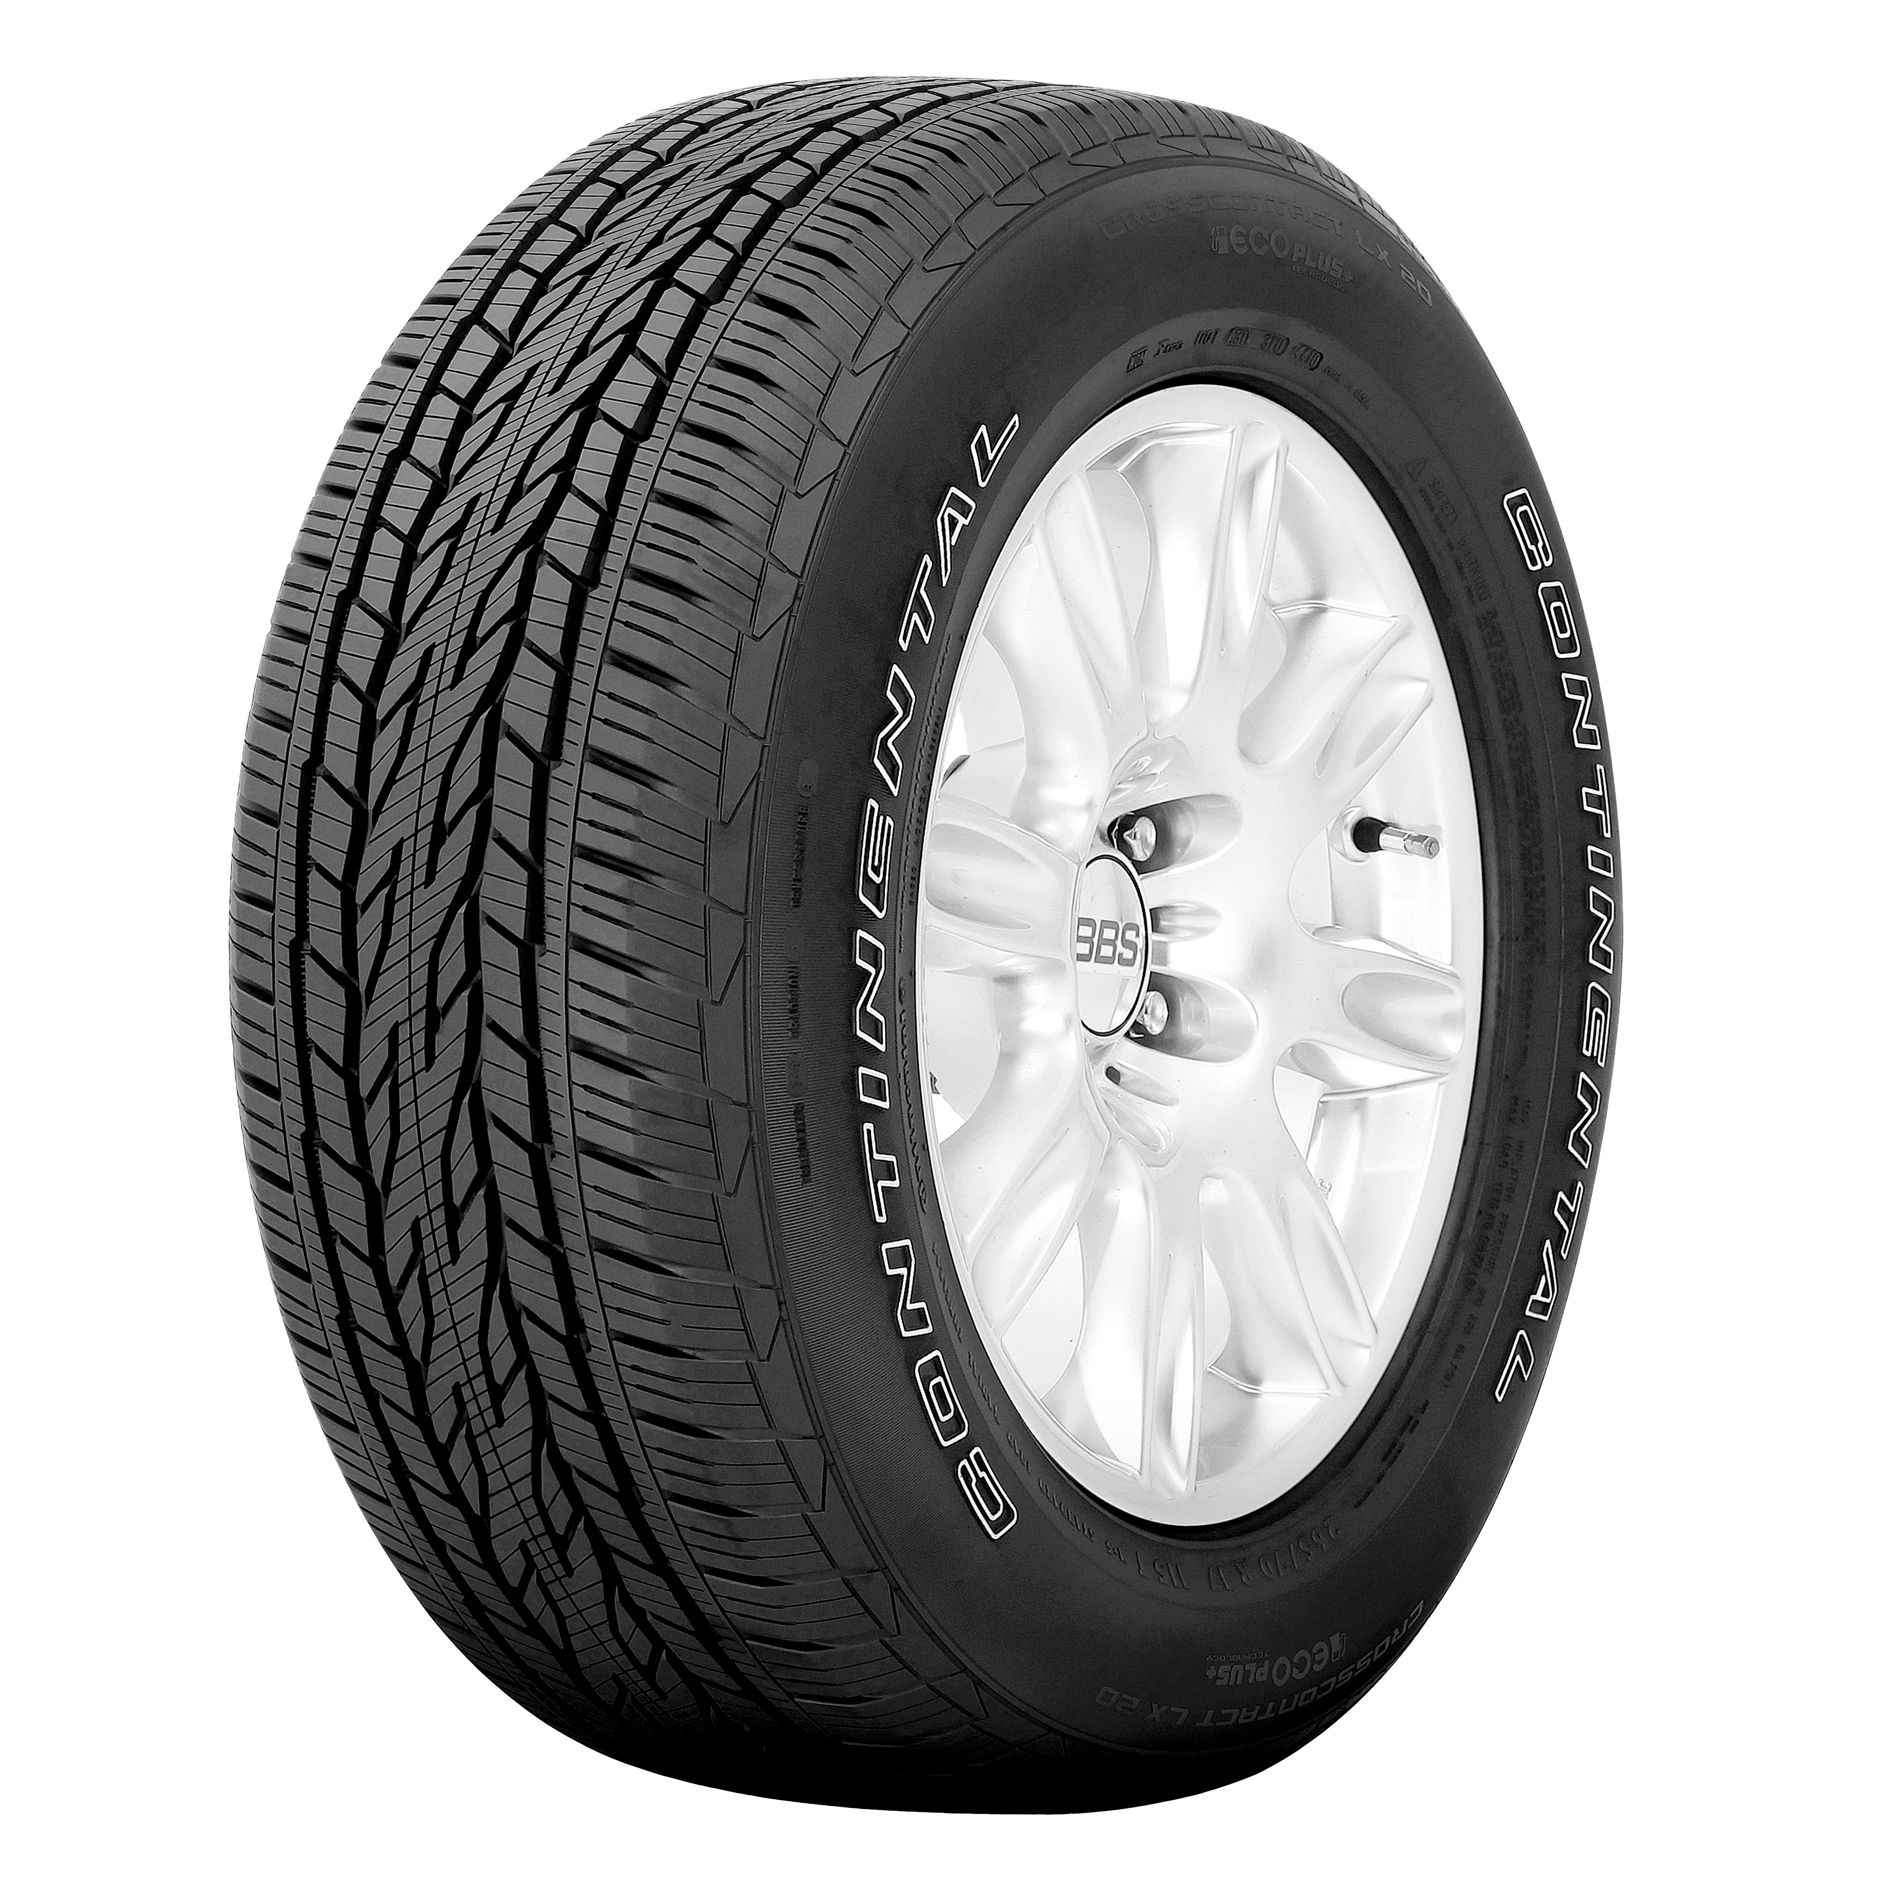 Continental CrossContact LX20 Ecoplus - 265/70R17 115T BW - All Season Tire 265-70-17